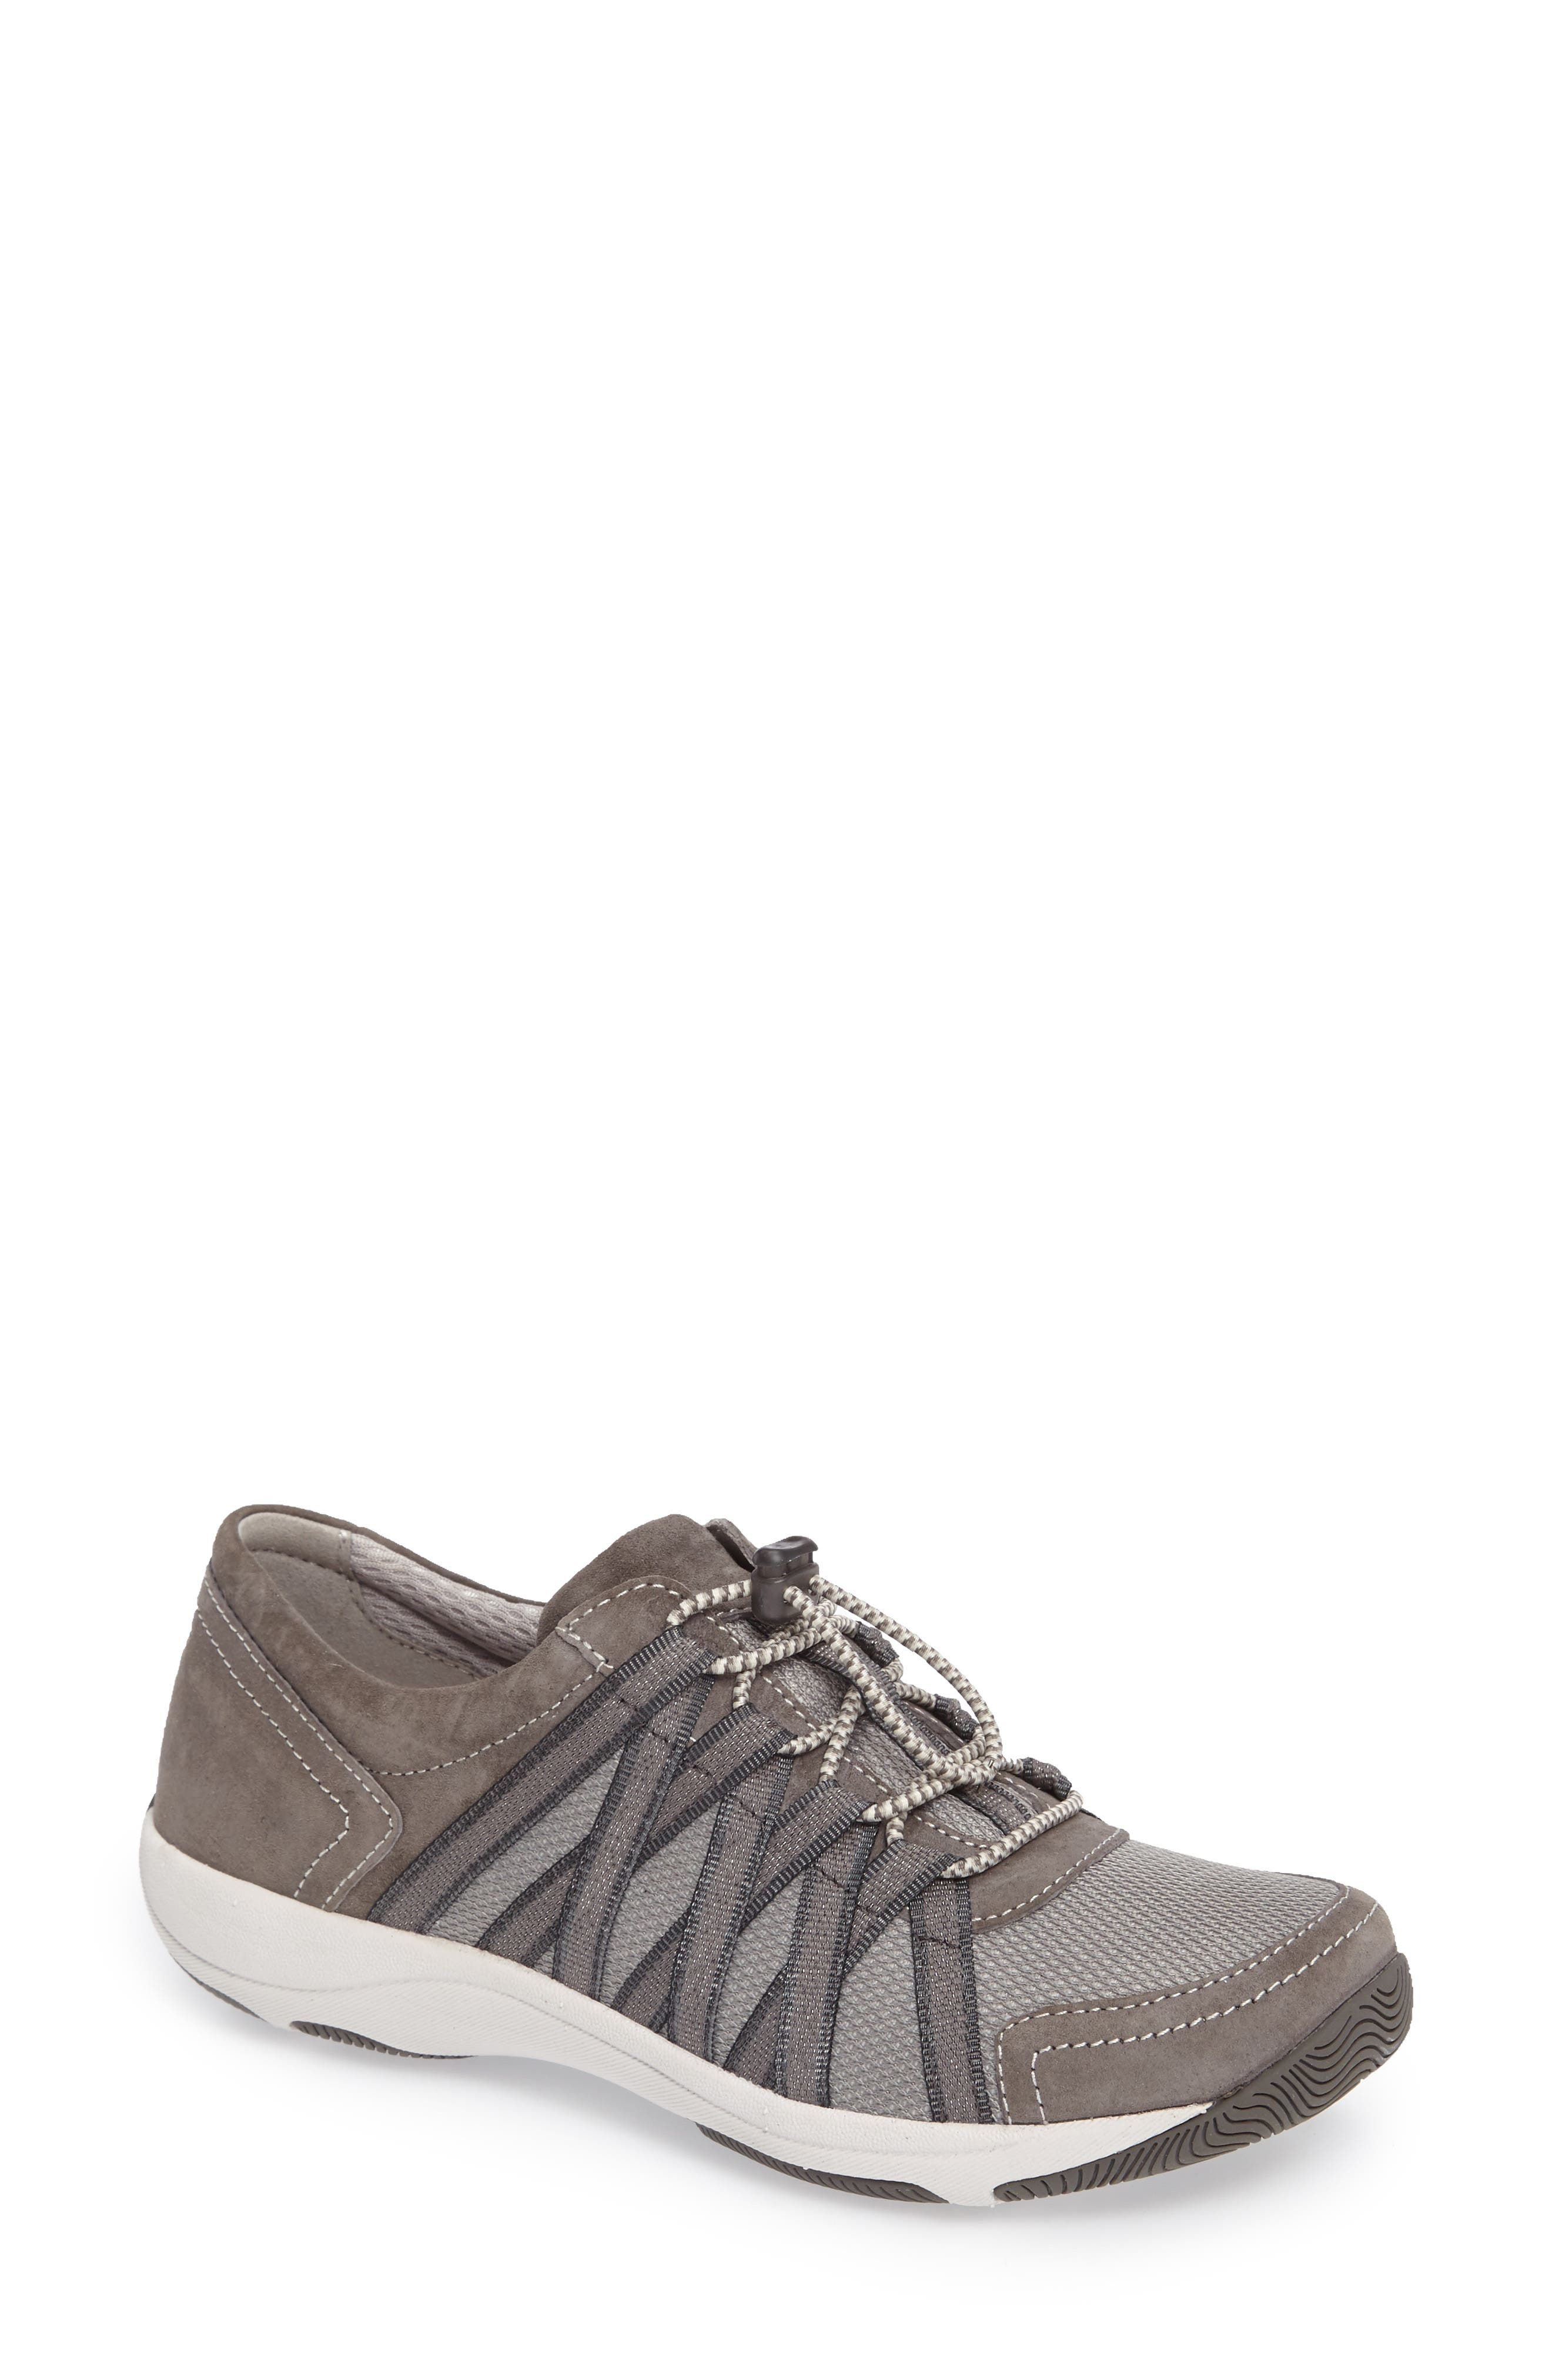 Halifax Collection Honor Sneaker,                             Main thumbnail 6, color,